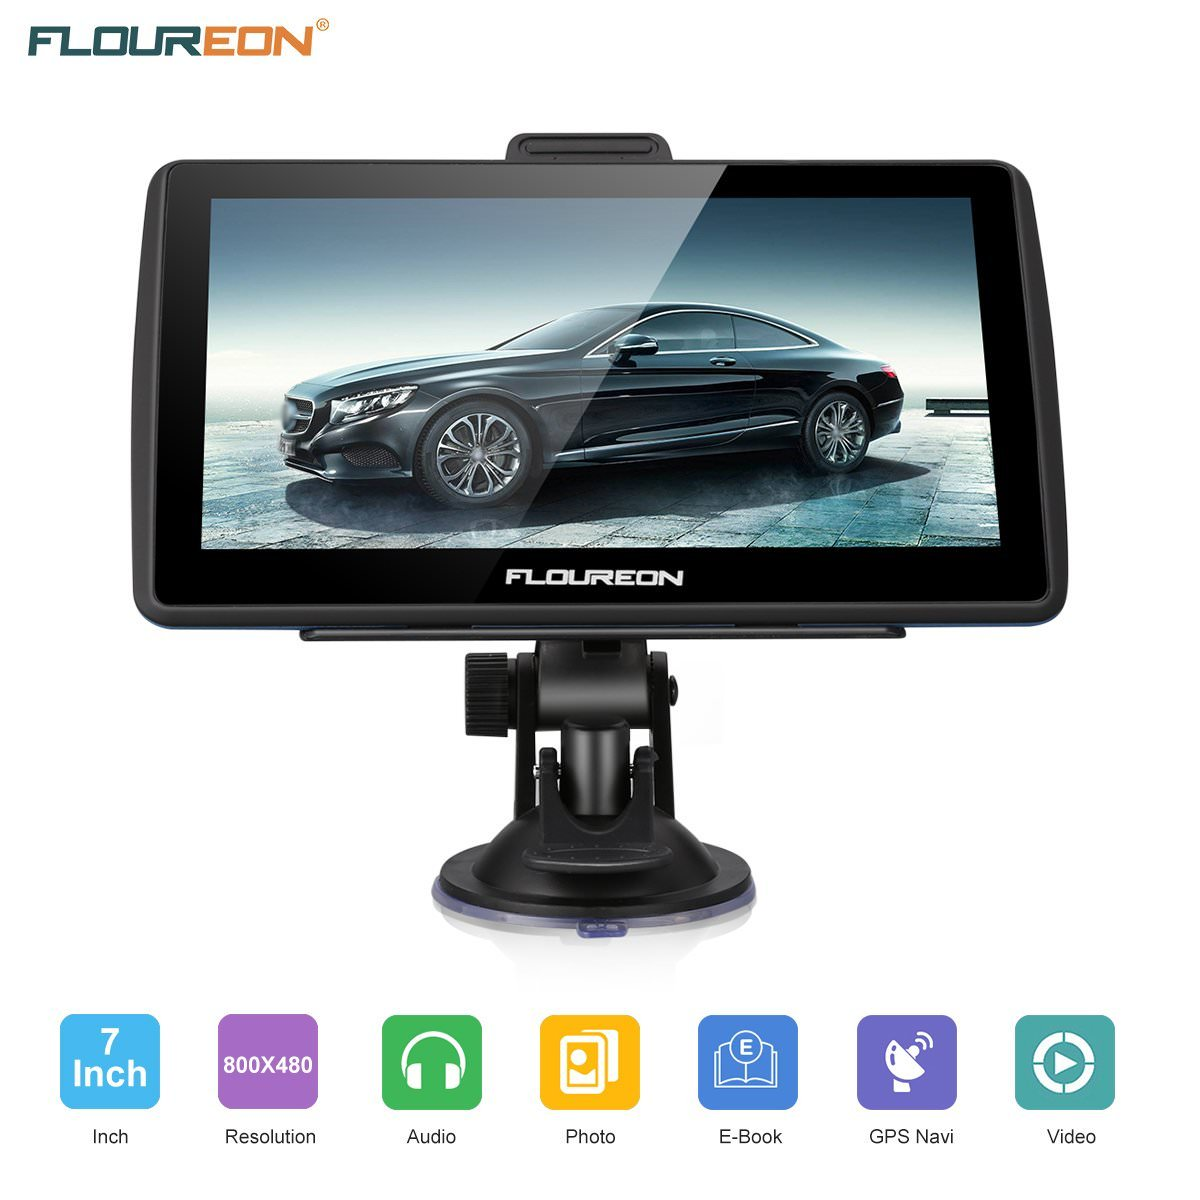 Floureon GPS Navigation for Car, 7 inches 8GB Lifetime Map Update Spoken Turn-to-turn Navigation System for Cars, Vehicle GPS Navigator